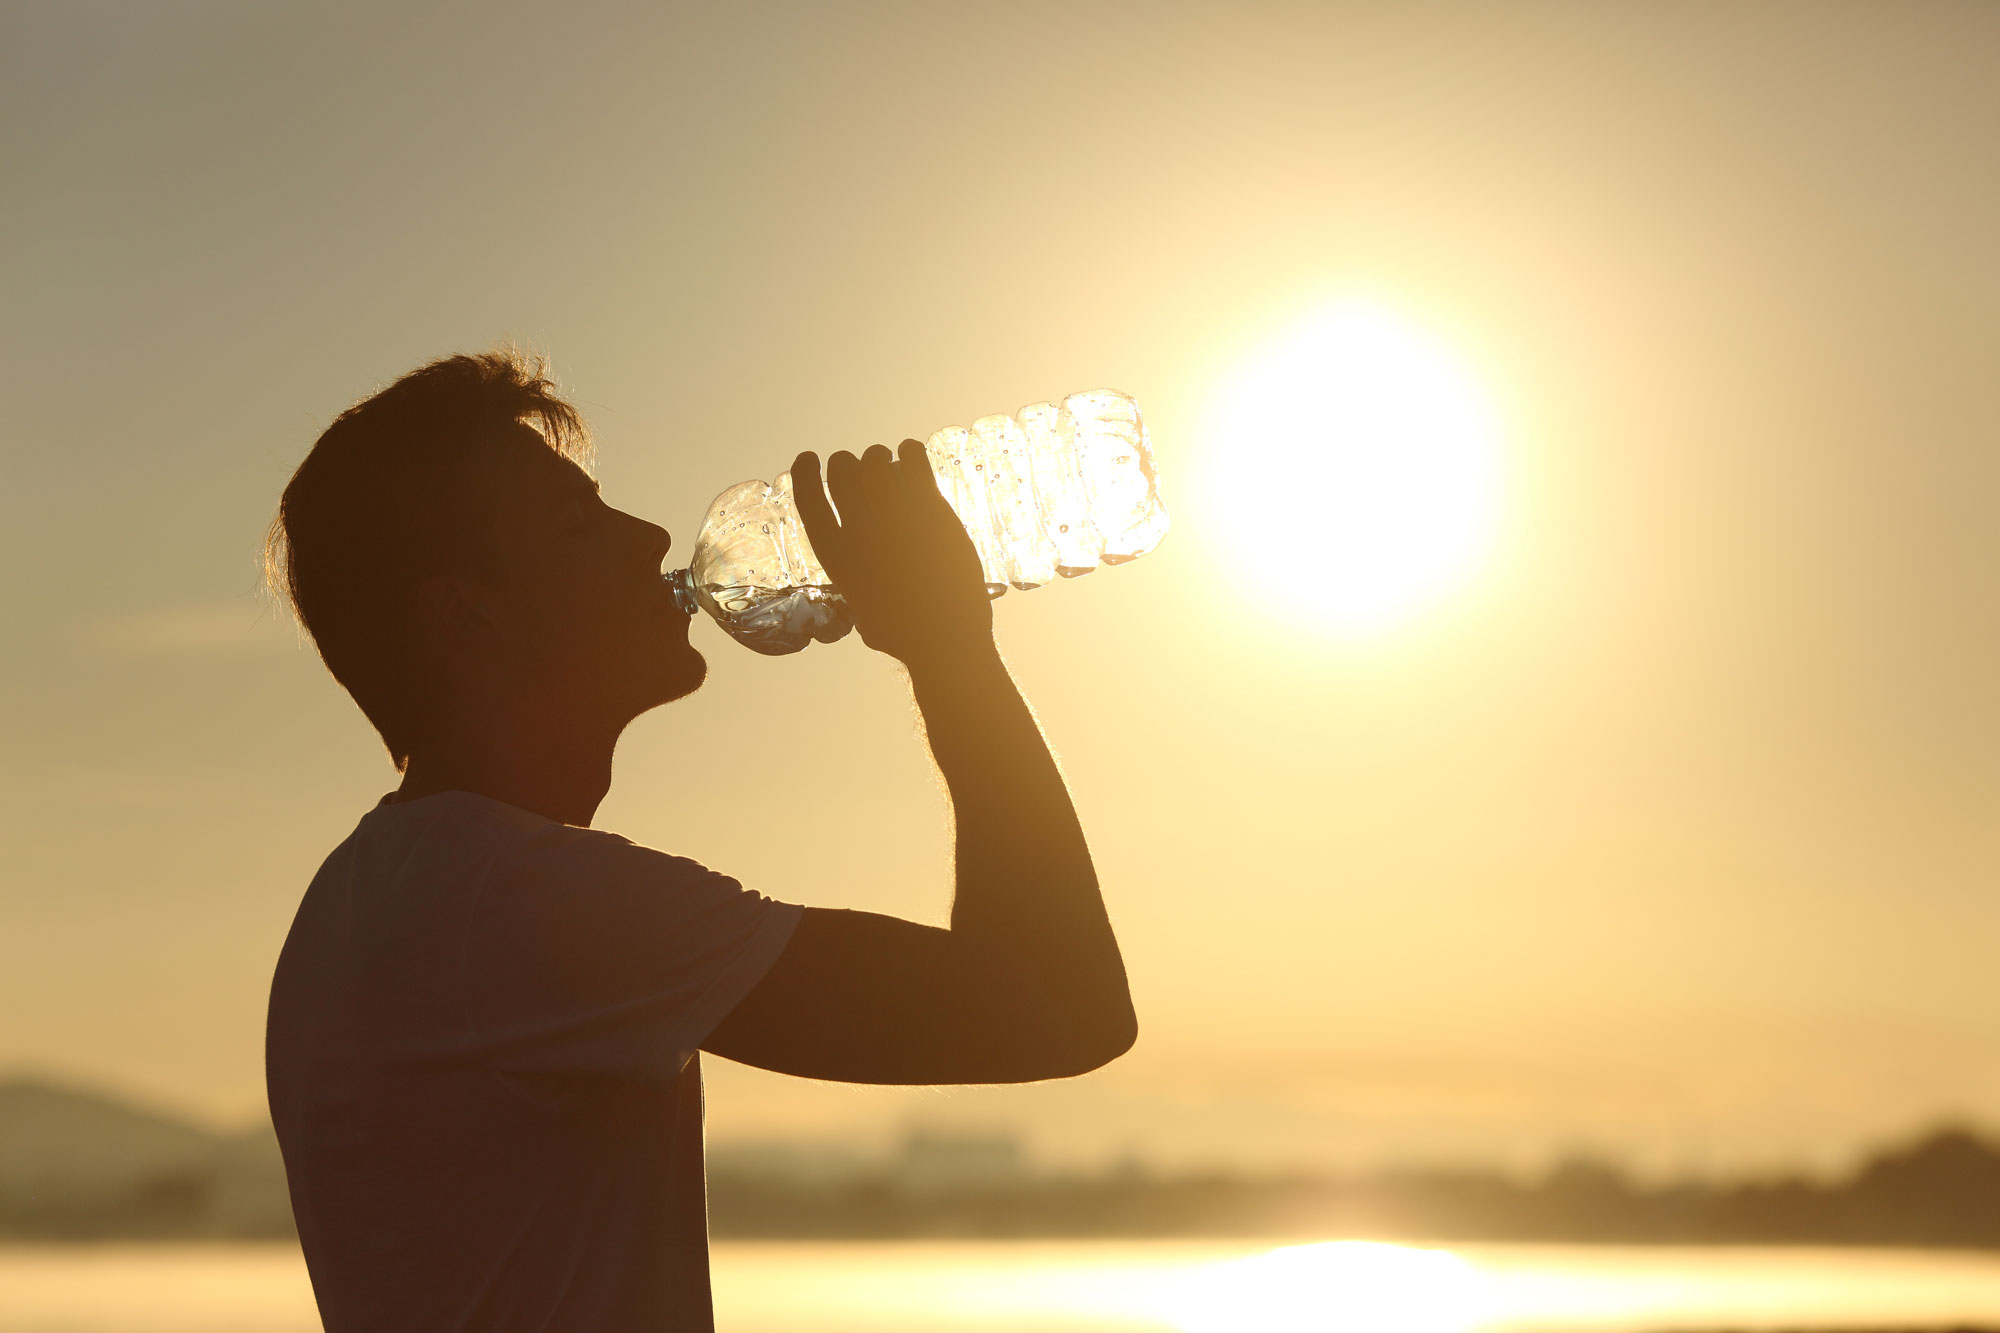 man drinking water in extreme heat